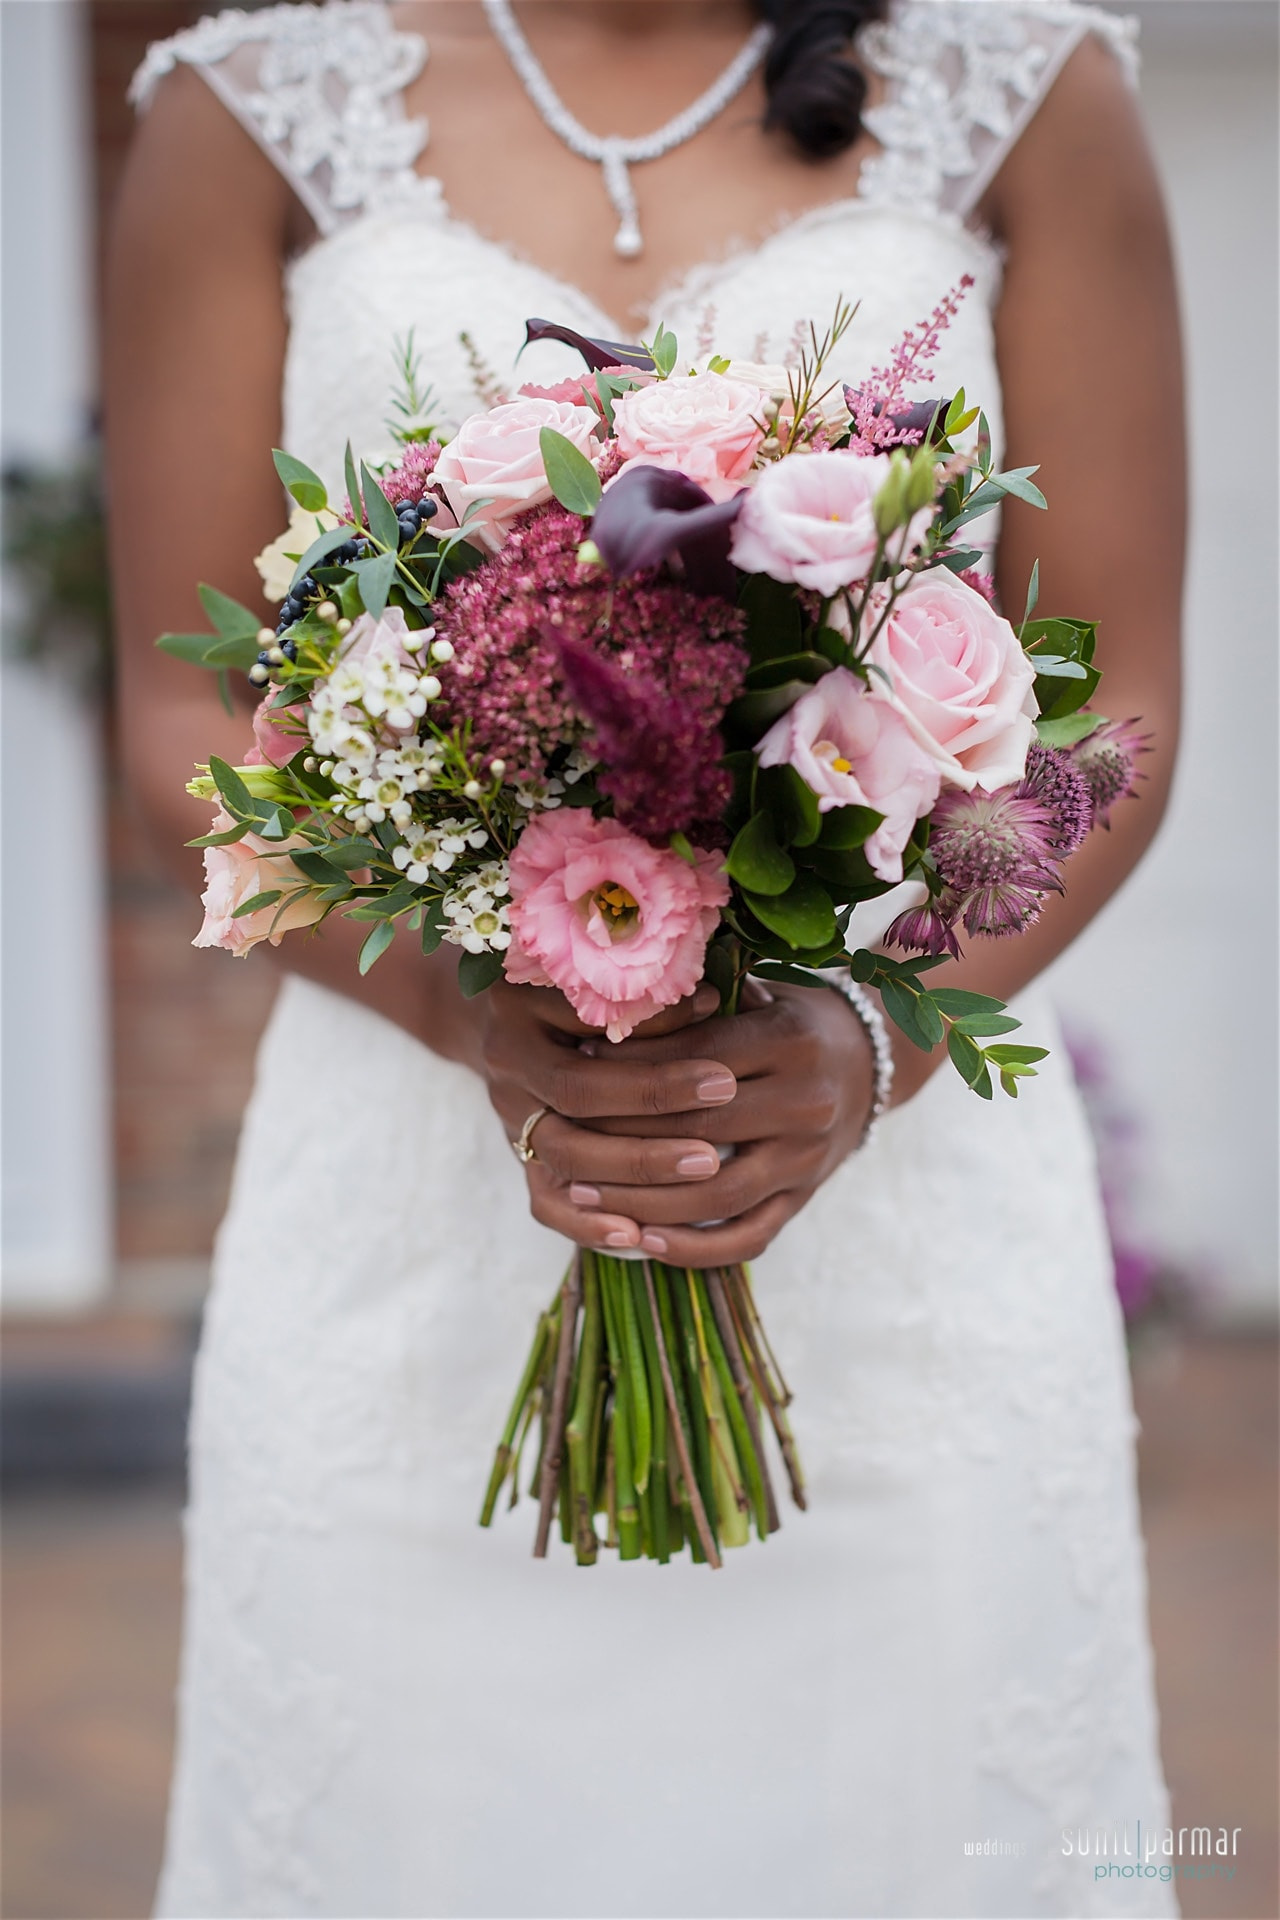 Burgundy and blush wedding bouquet